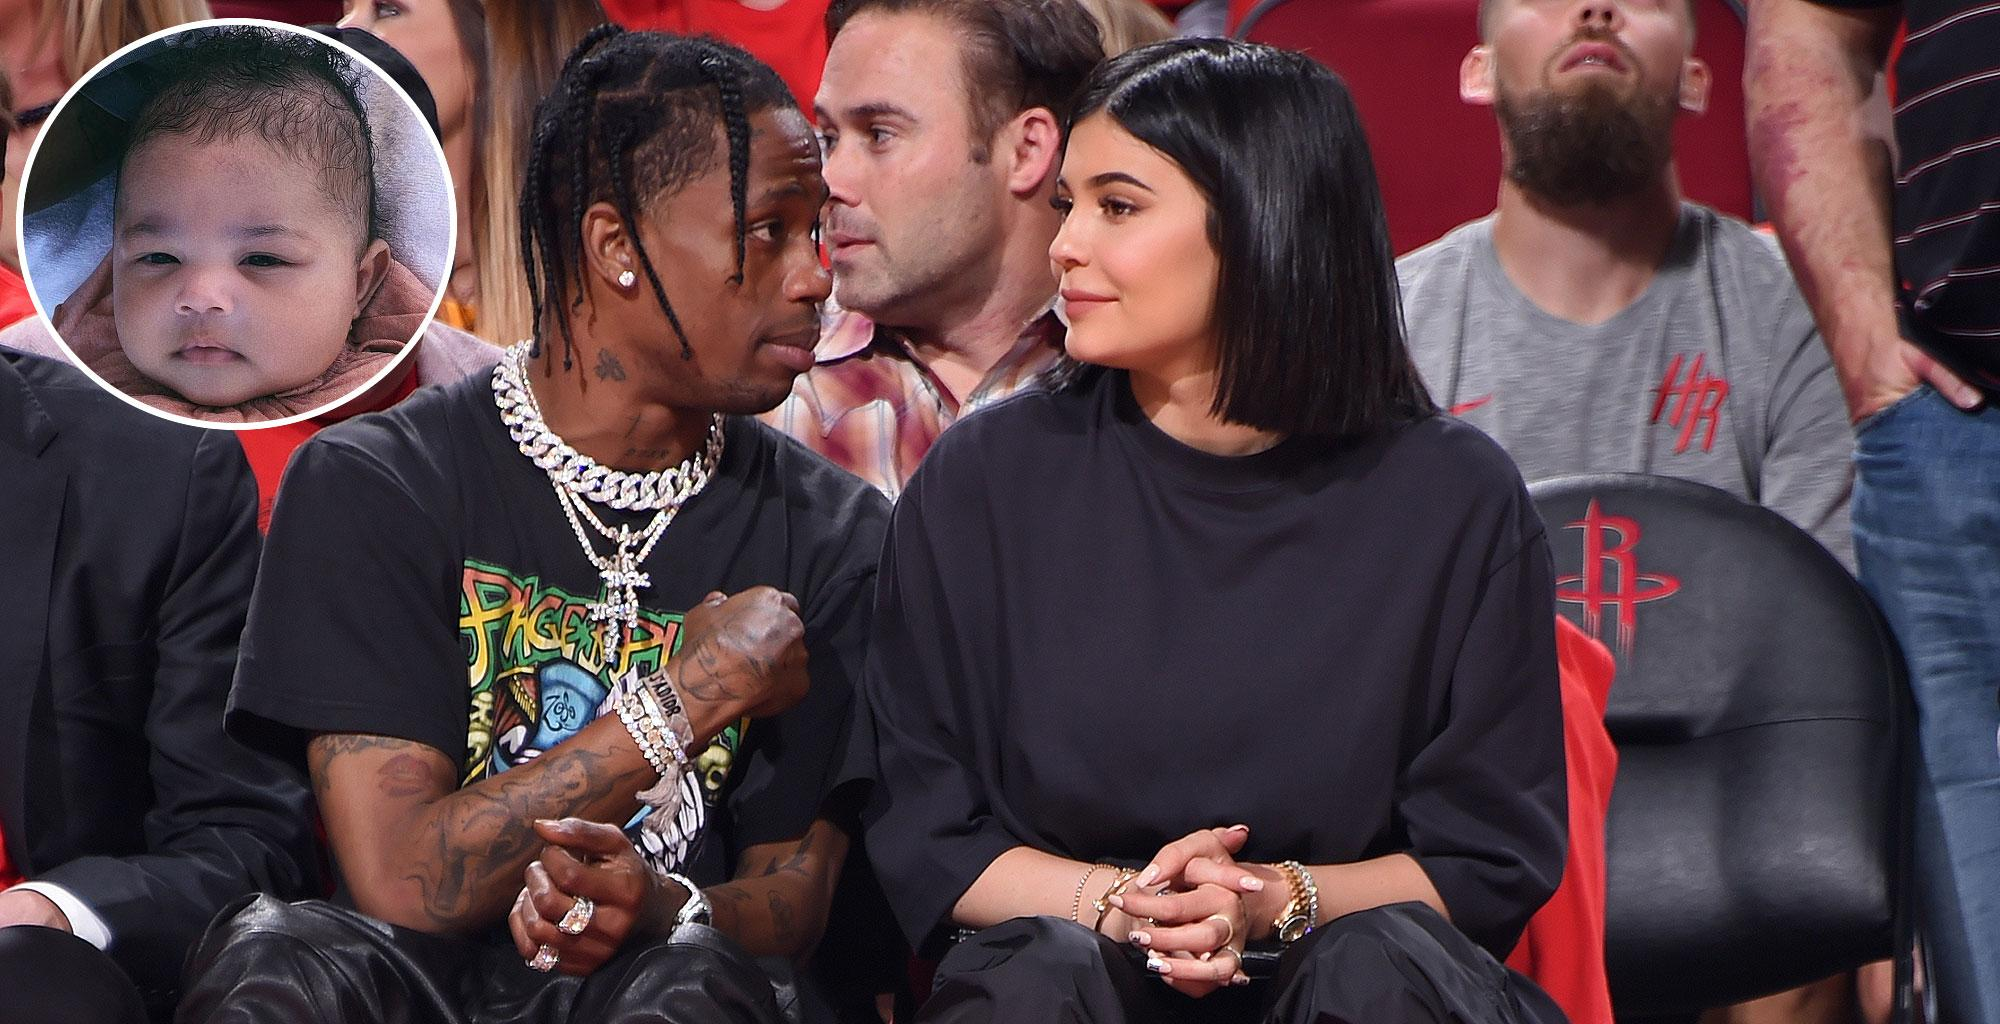 KUWK: Kylie Jenner Would 'Love' To Get Pregnant By The End Of This Year - Here's Why!